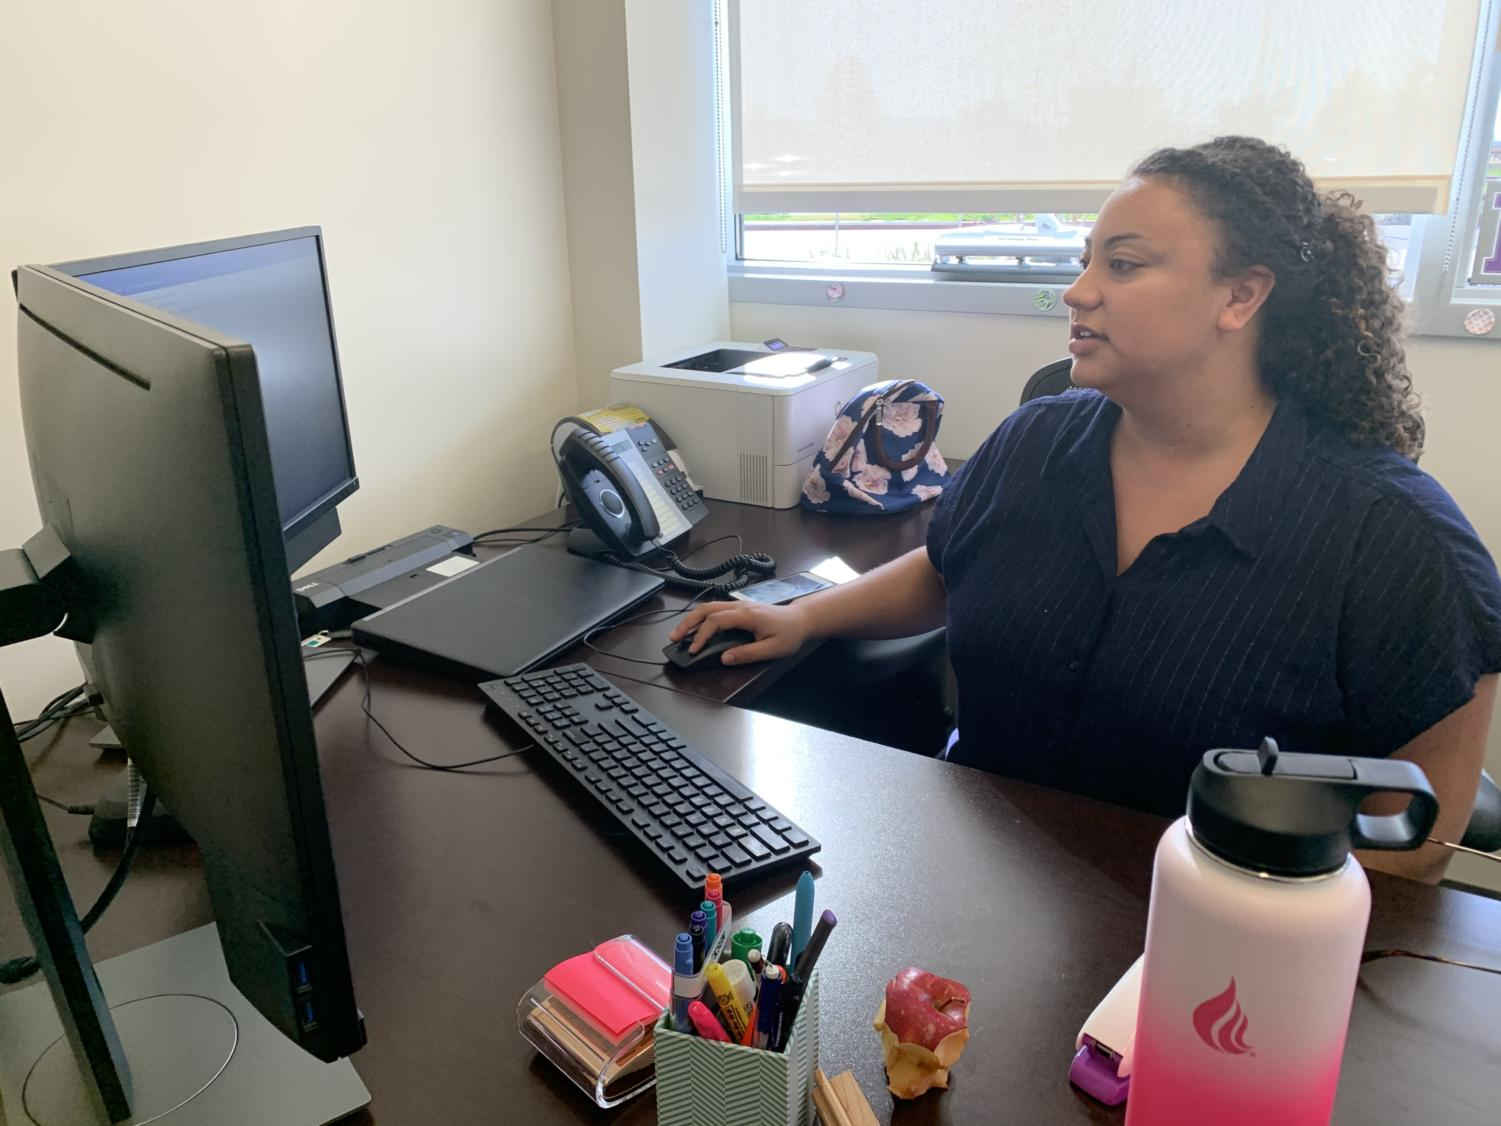 Nicole Jackson works on promoting healthy life decisions and creating a comfortable environment for students on campus